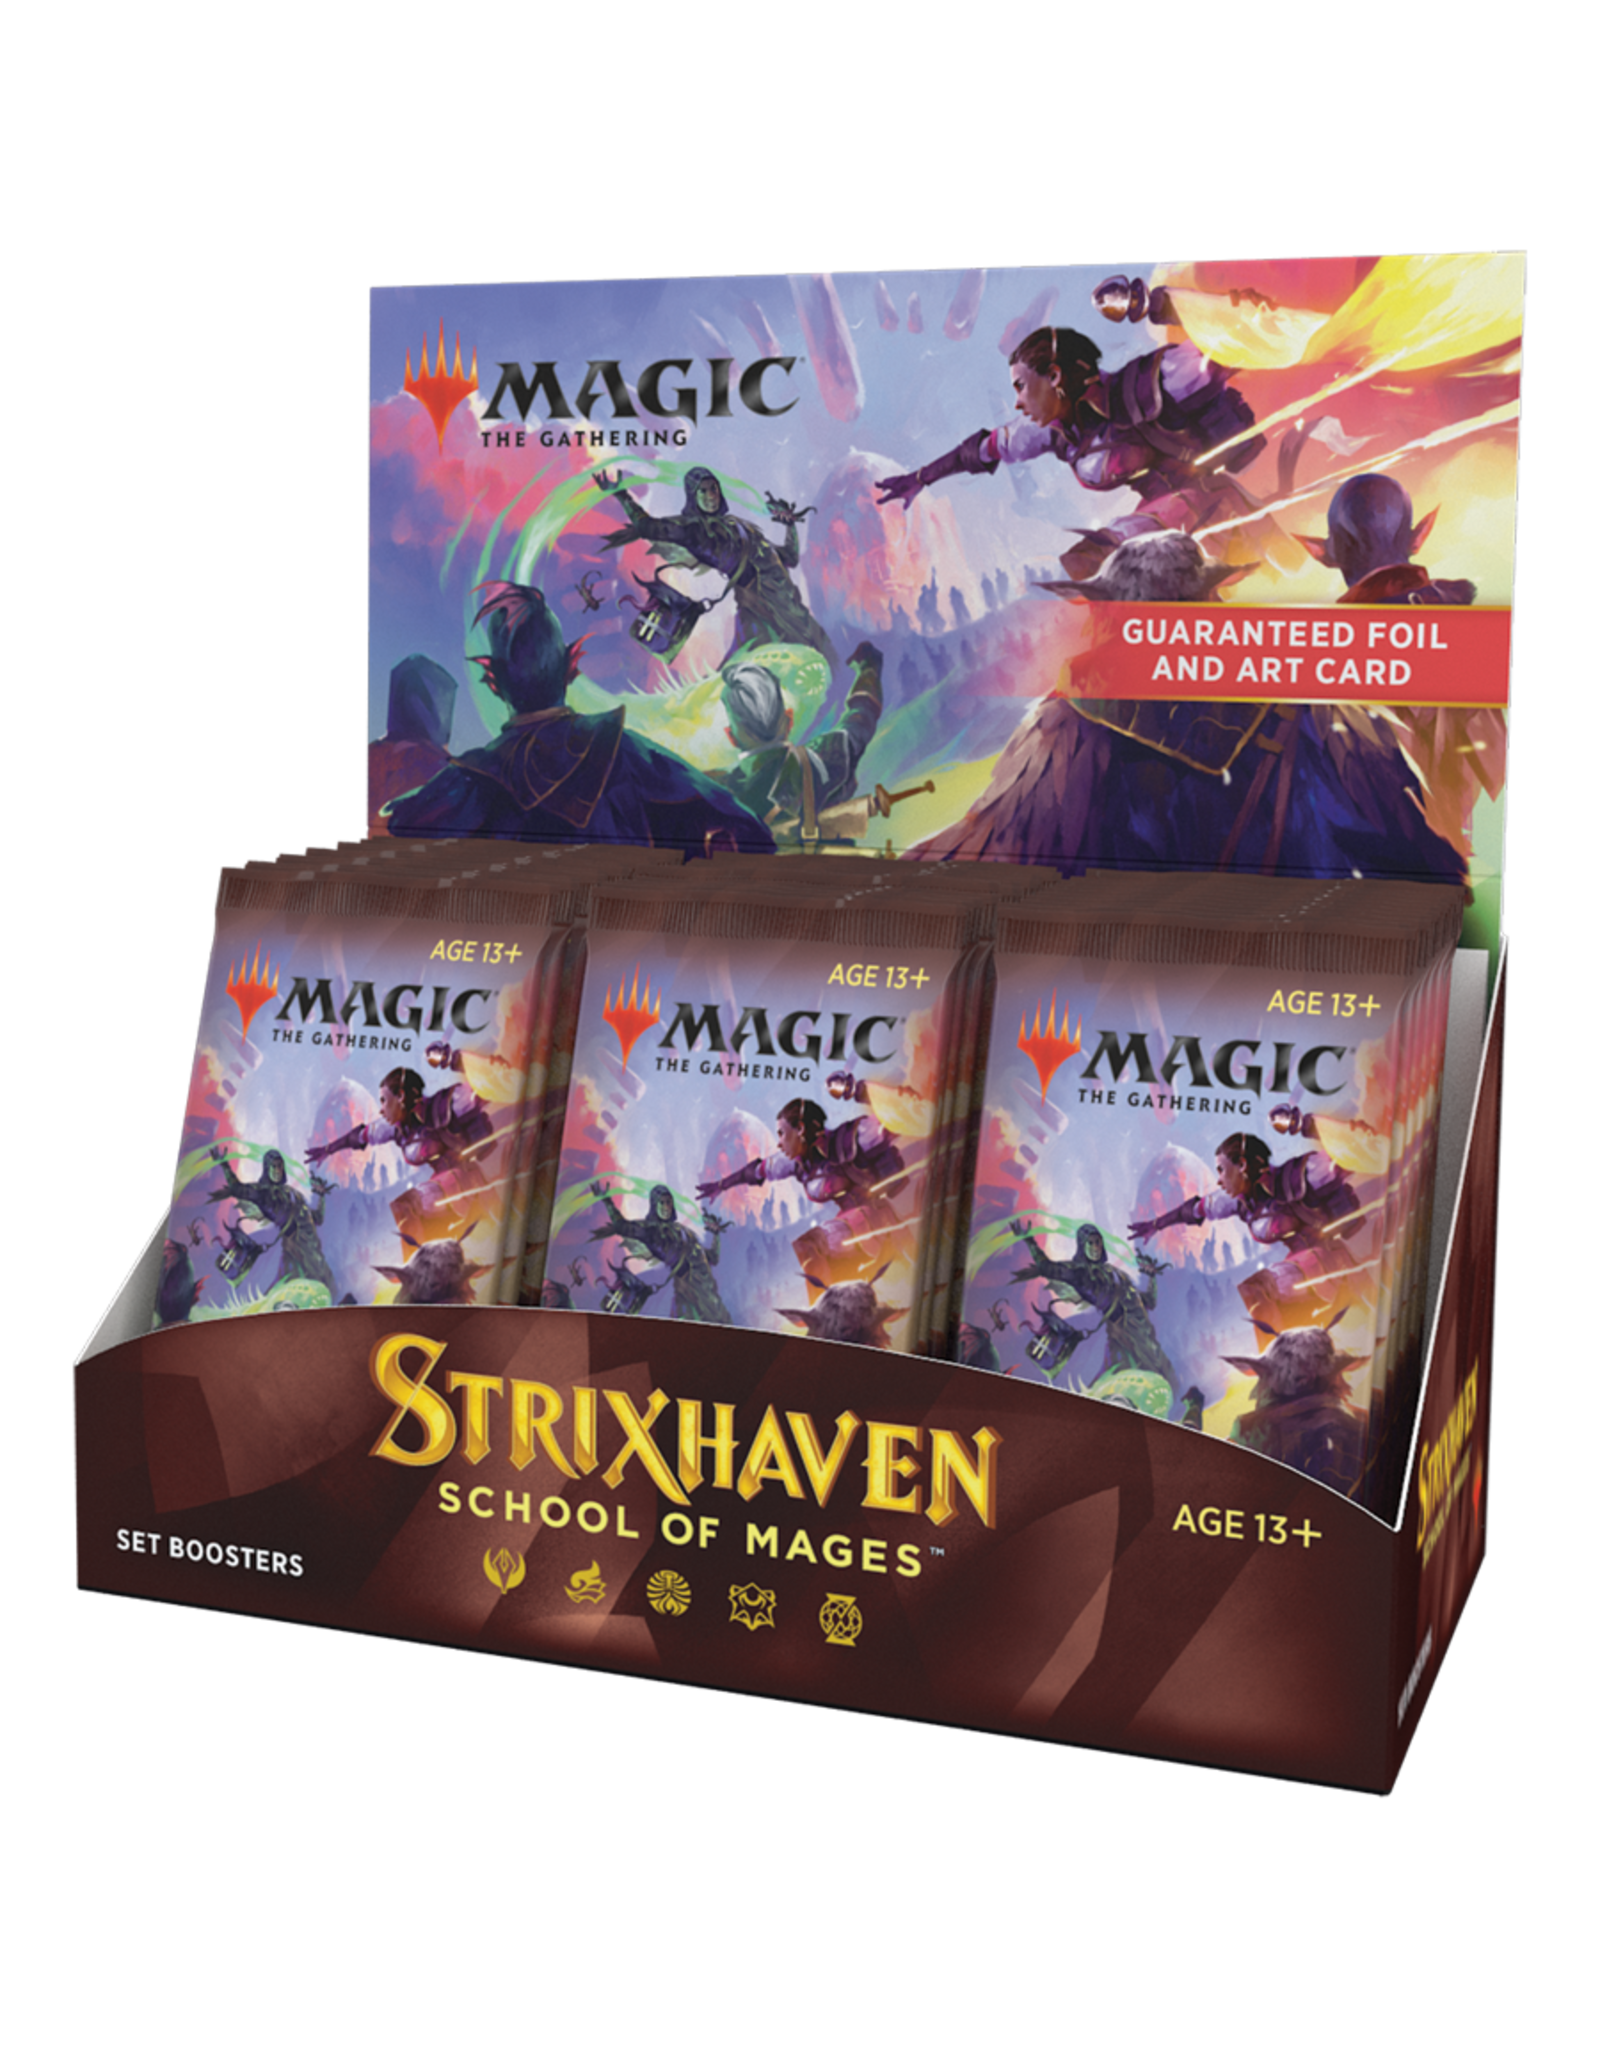 Magic: The Gathering Magic: The Gathering - Strixhaven: School of Mages - Set Booster Box